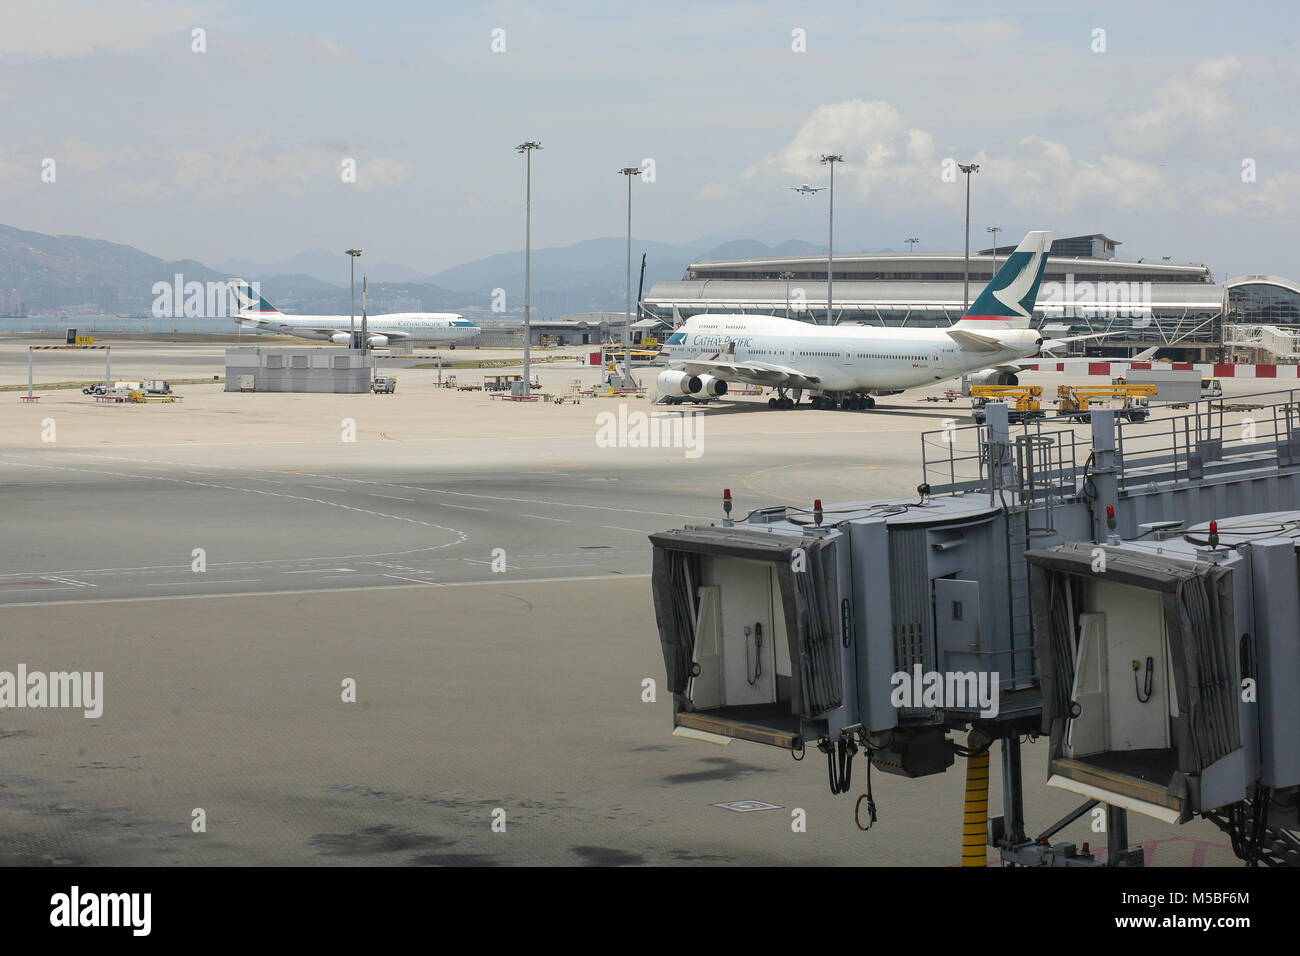 Two planes of the Cathay pacific company in the hub of Chek Lap kok airport in Hong Kong. Stock Photo